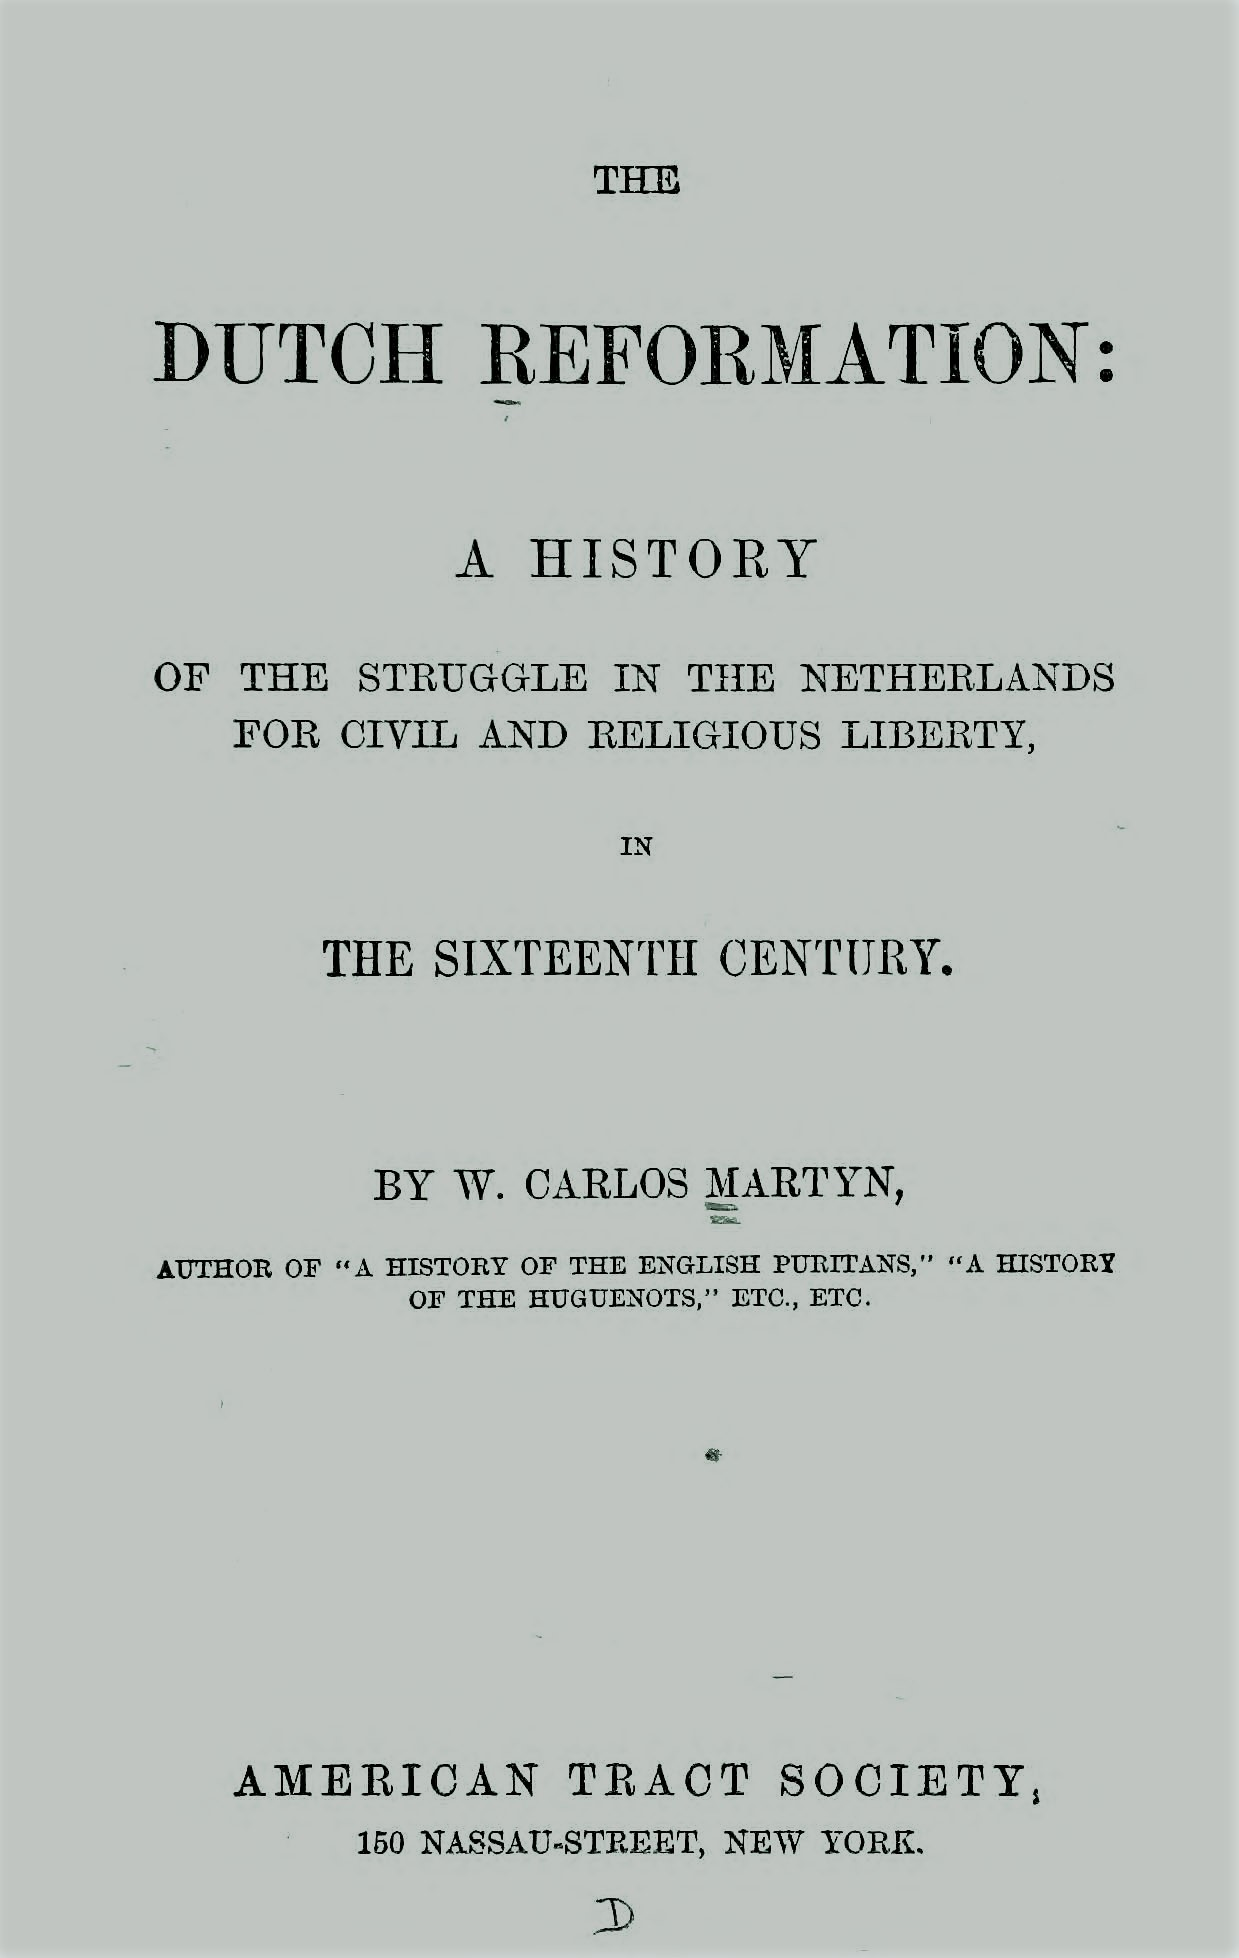 Martyn, William Carlos, The Dutch Reformation A History of the Struggle in the Netherlands for Civil and Religious Liberty Title Page.jpg